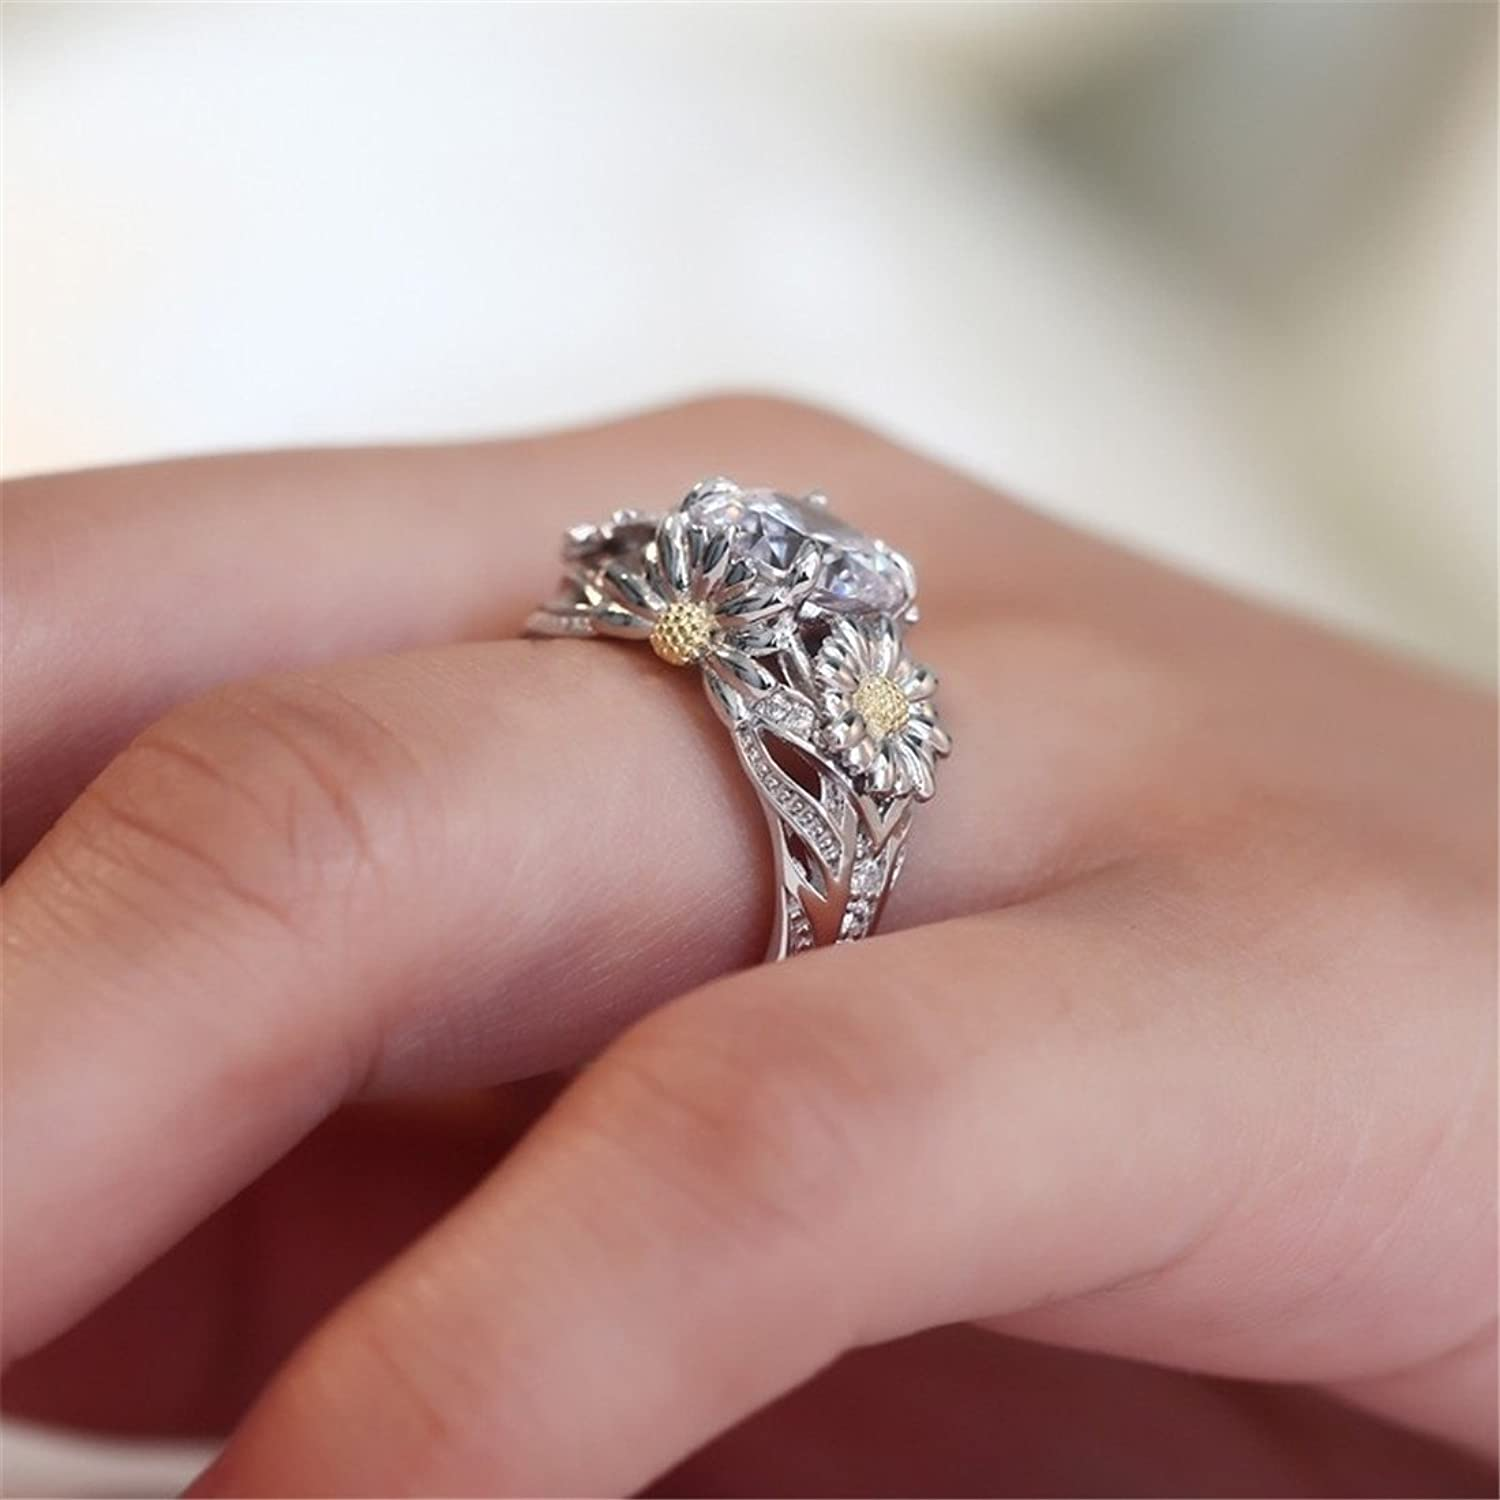 Amazon.com: Dalaran Sunflower Cubic Zirconia Ring for Women Wedding ...